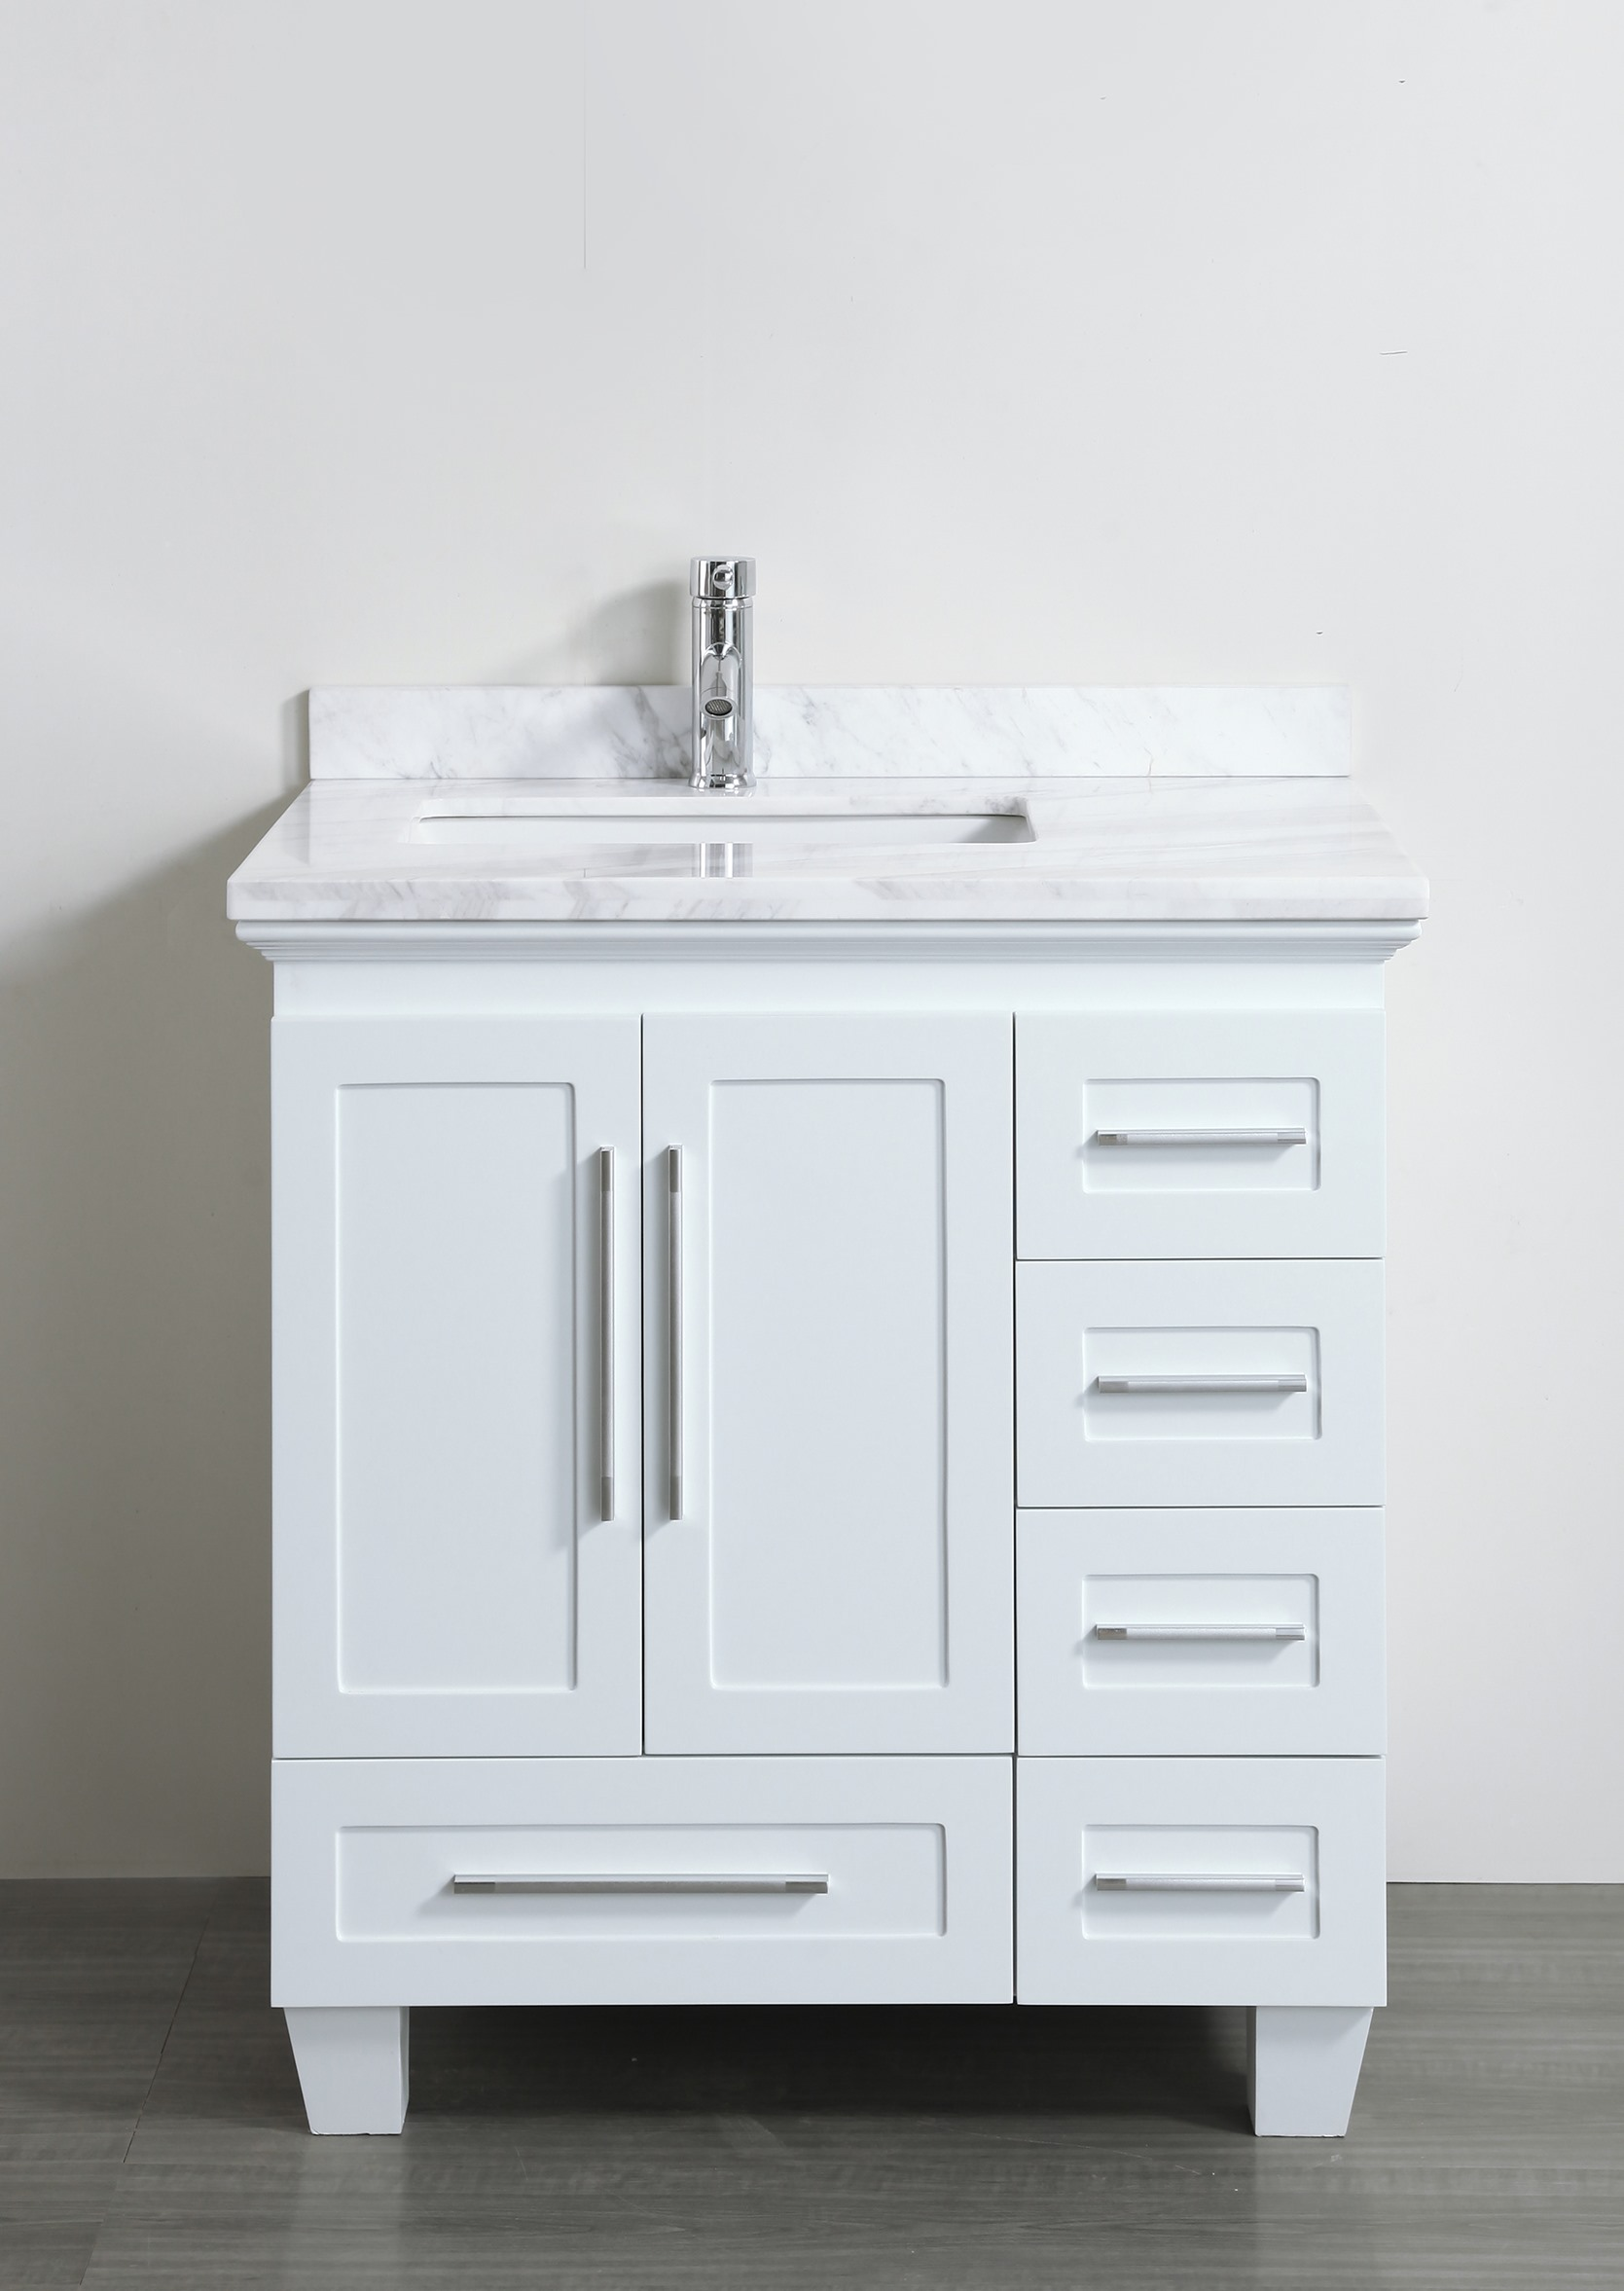 Contemporary 30 inch White Finish Bathroom Vanity Marble Countertop